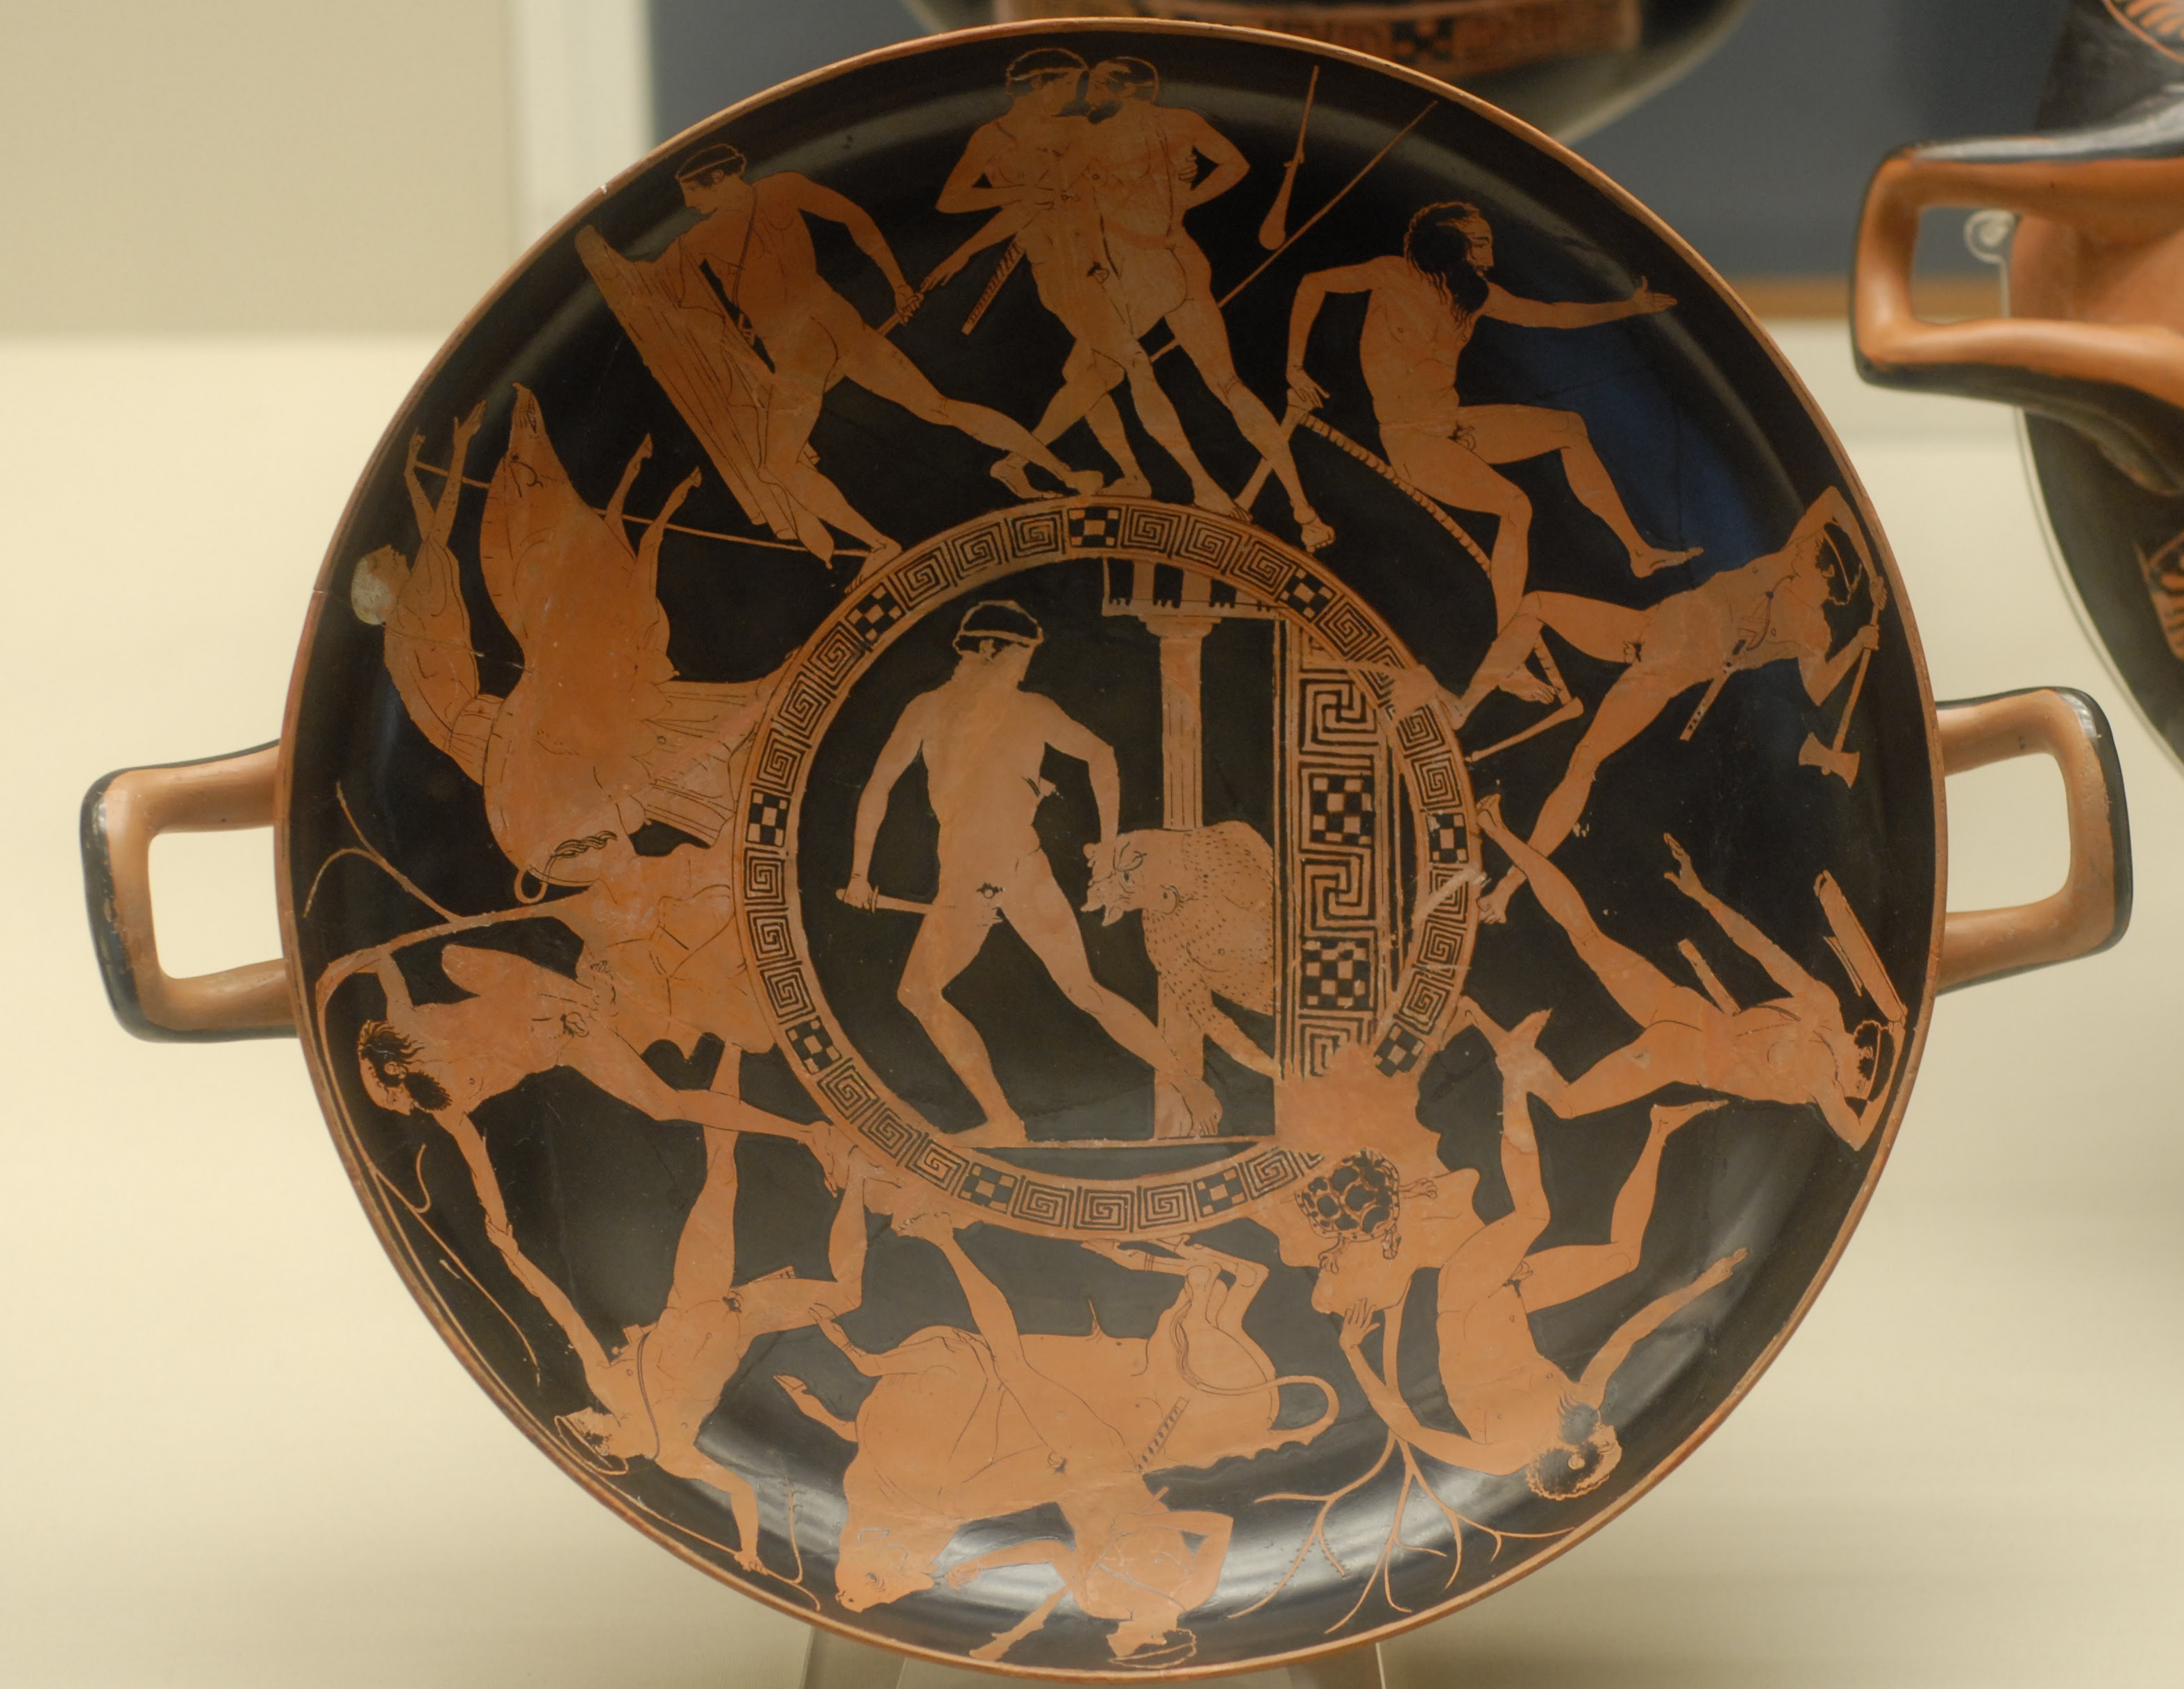 http://upload.wikimedia.org/wikipedia/commons/4/45/Theseus_deeds_BM_E_84.JPG